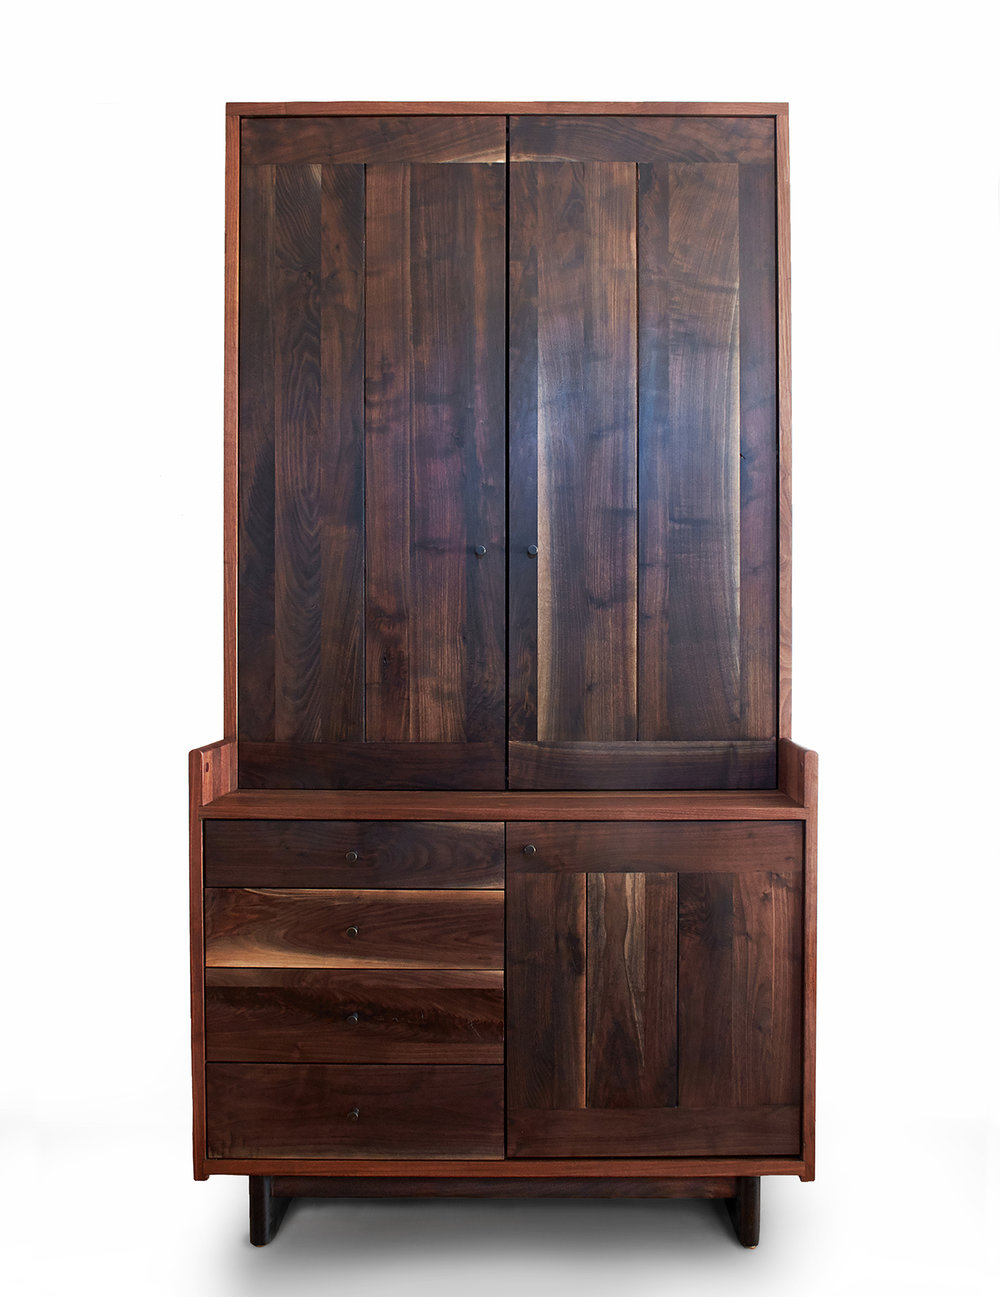 "Black Walnut case & Oxidized Walnut fronts   92""H x 48""W x 30""D   Blackened brass pulls"